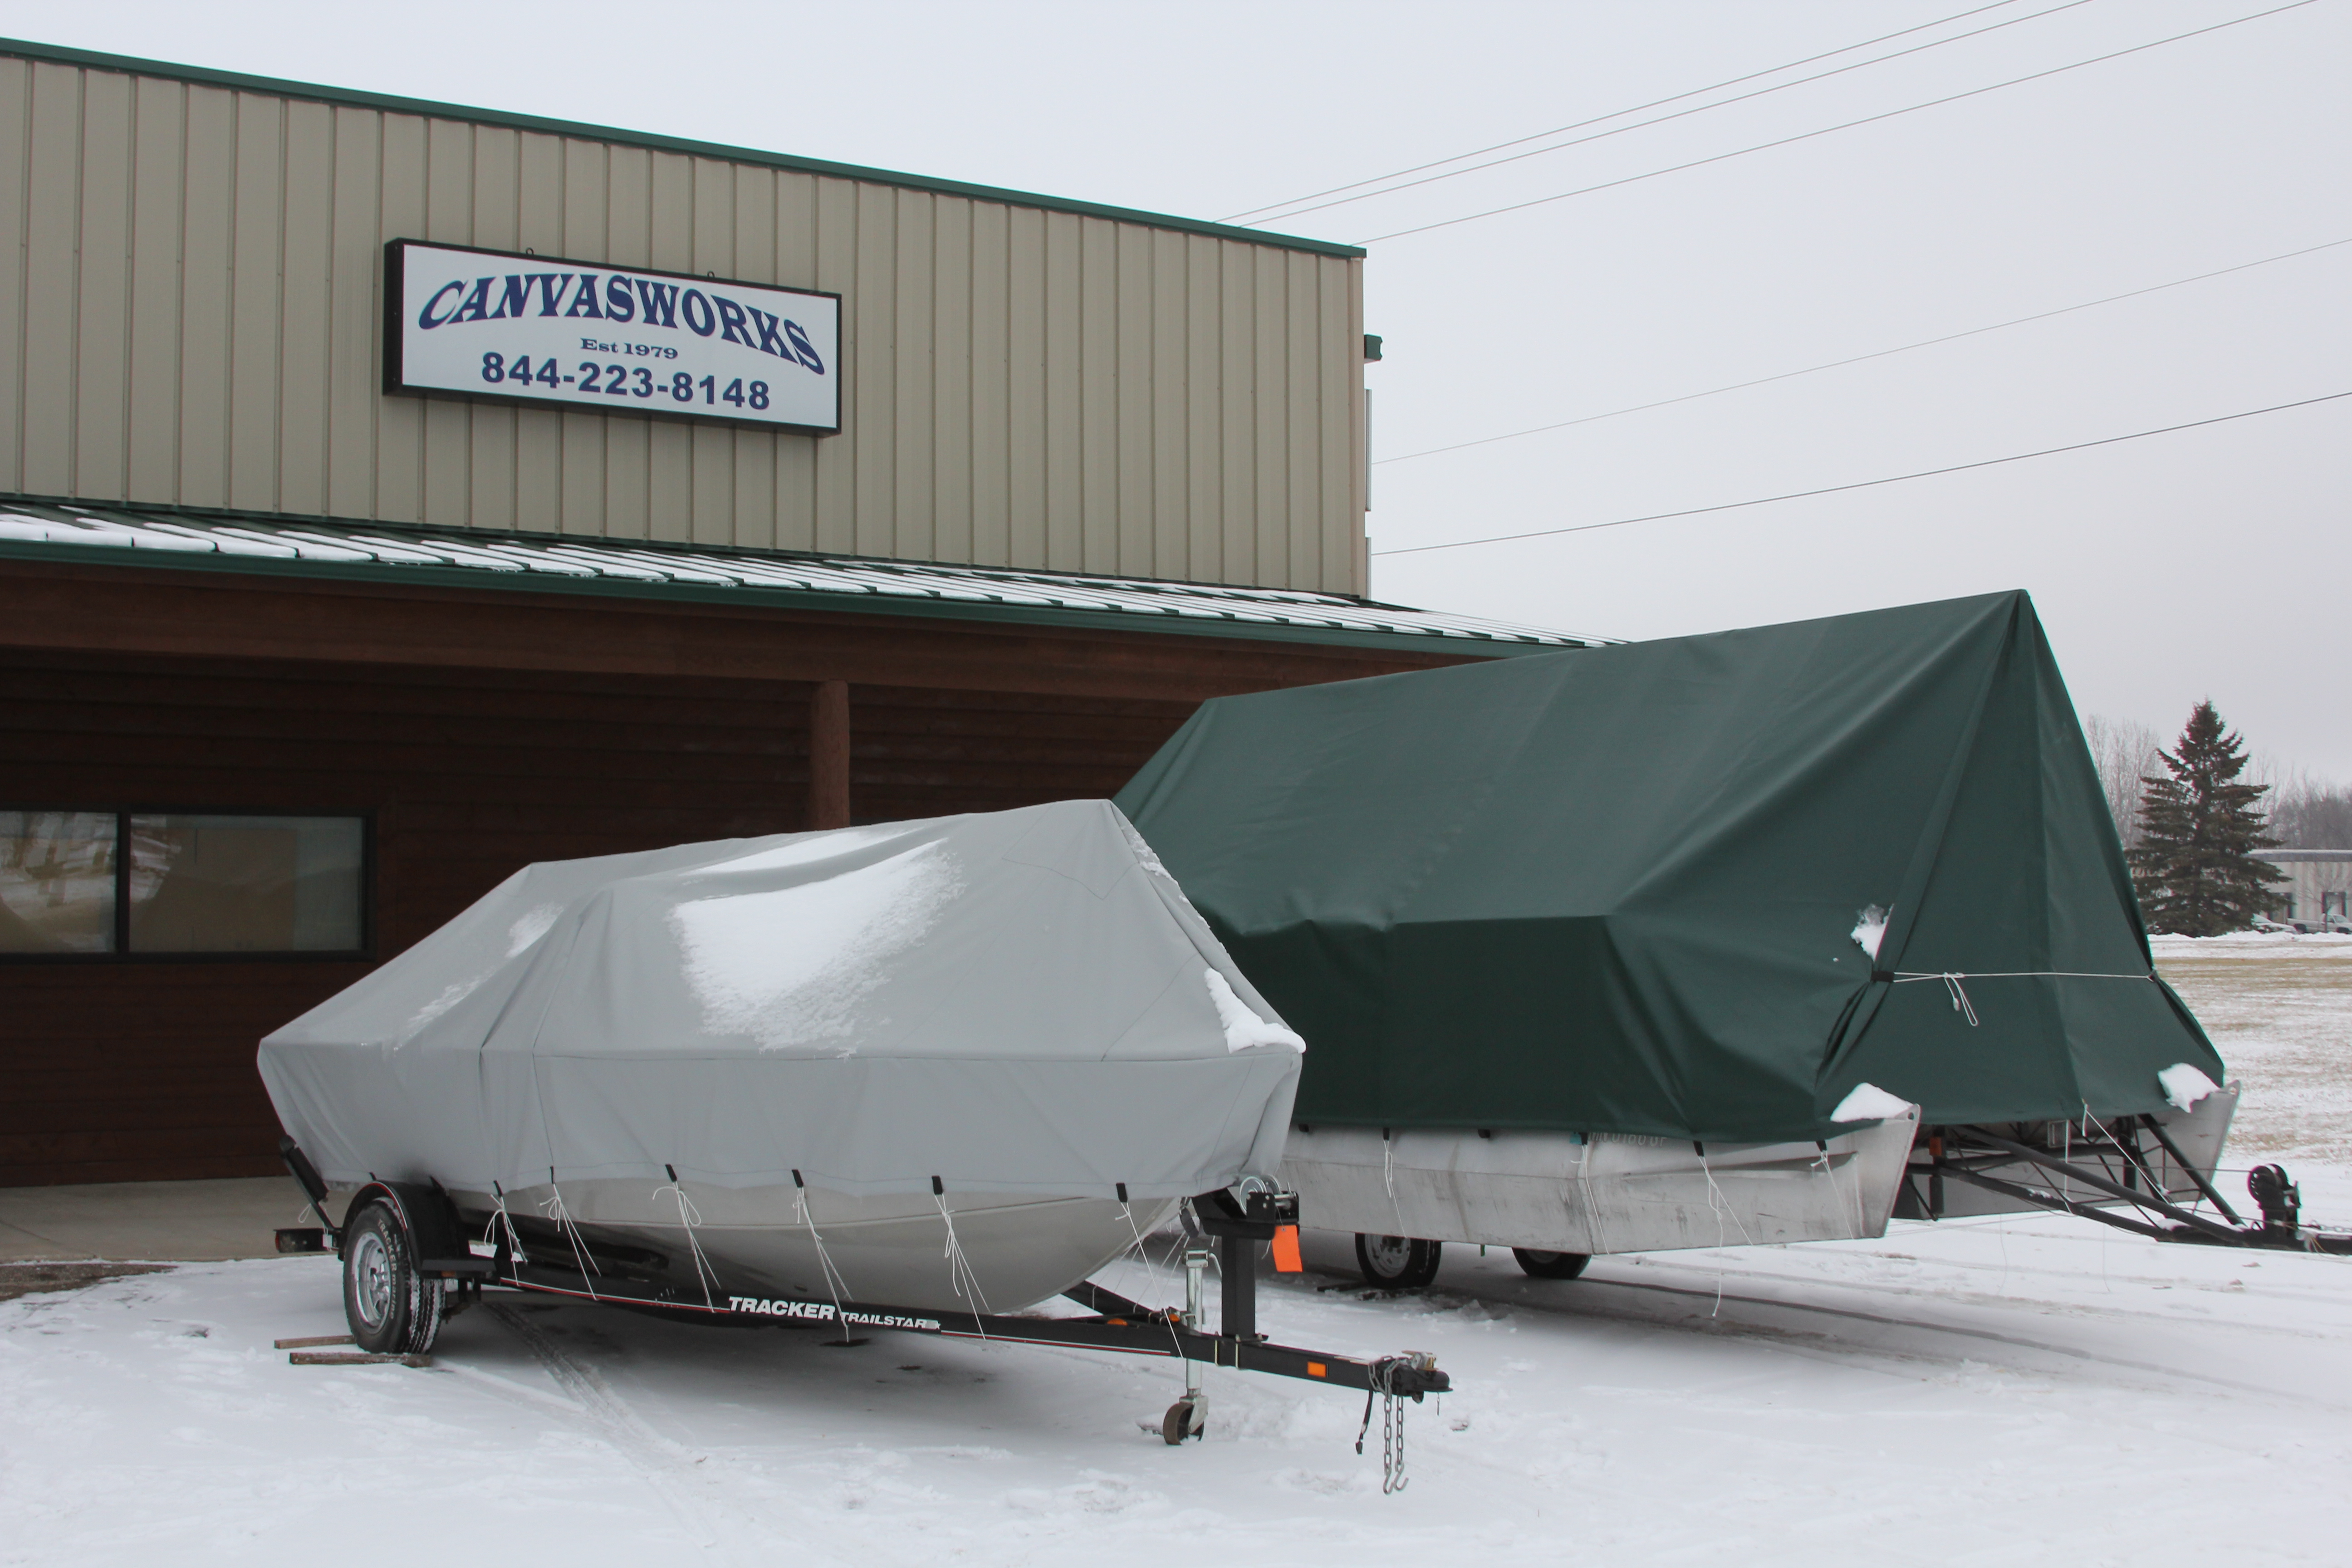 Canvas covers for storing boats in the winter